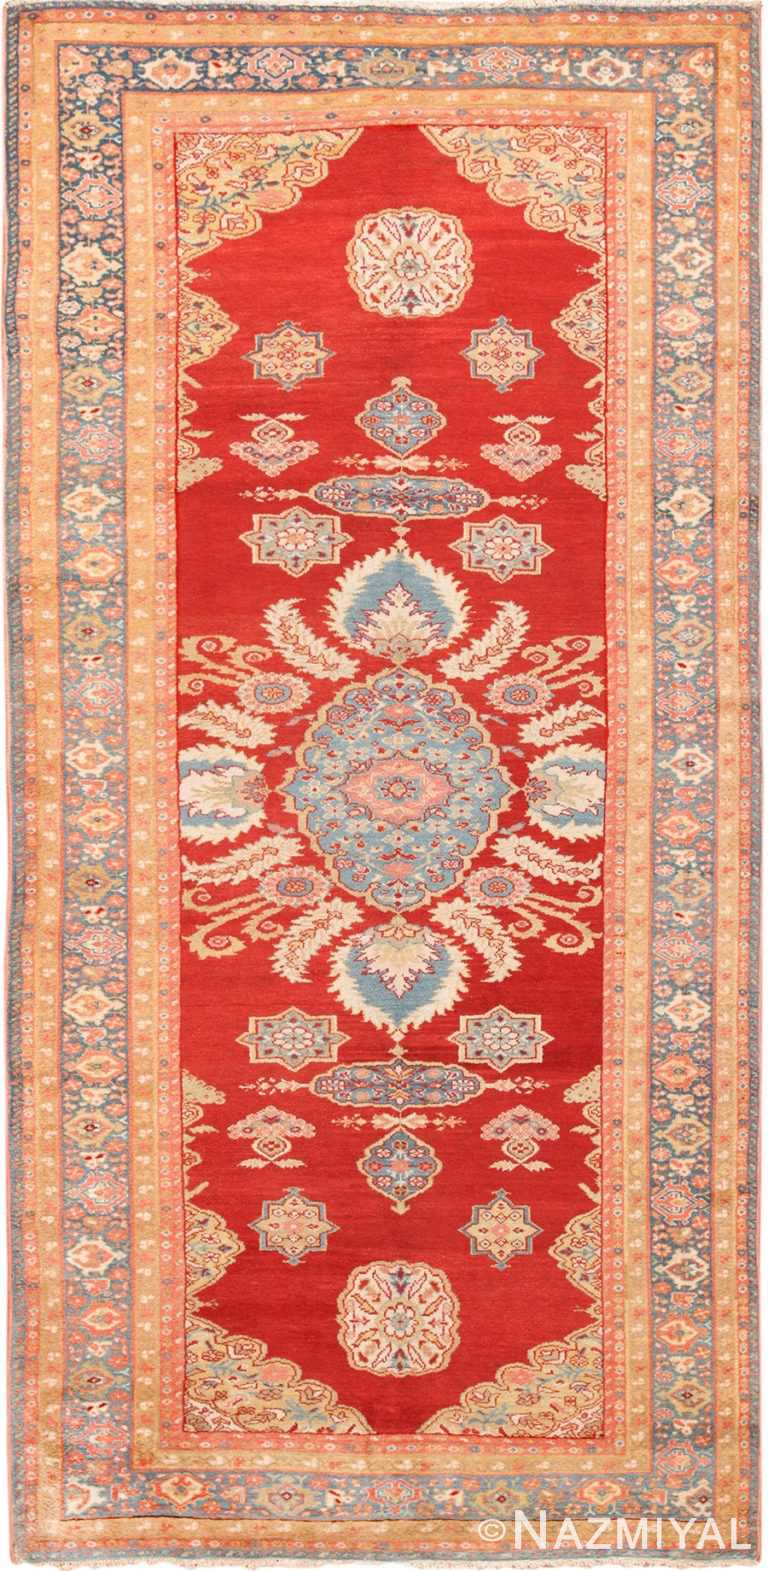 Long and Narrow Antique Persian Sultanabad Rug 49679 by Nazmiyal